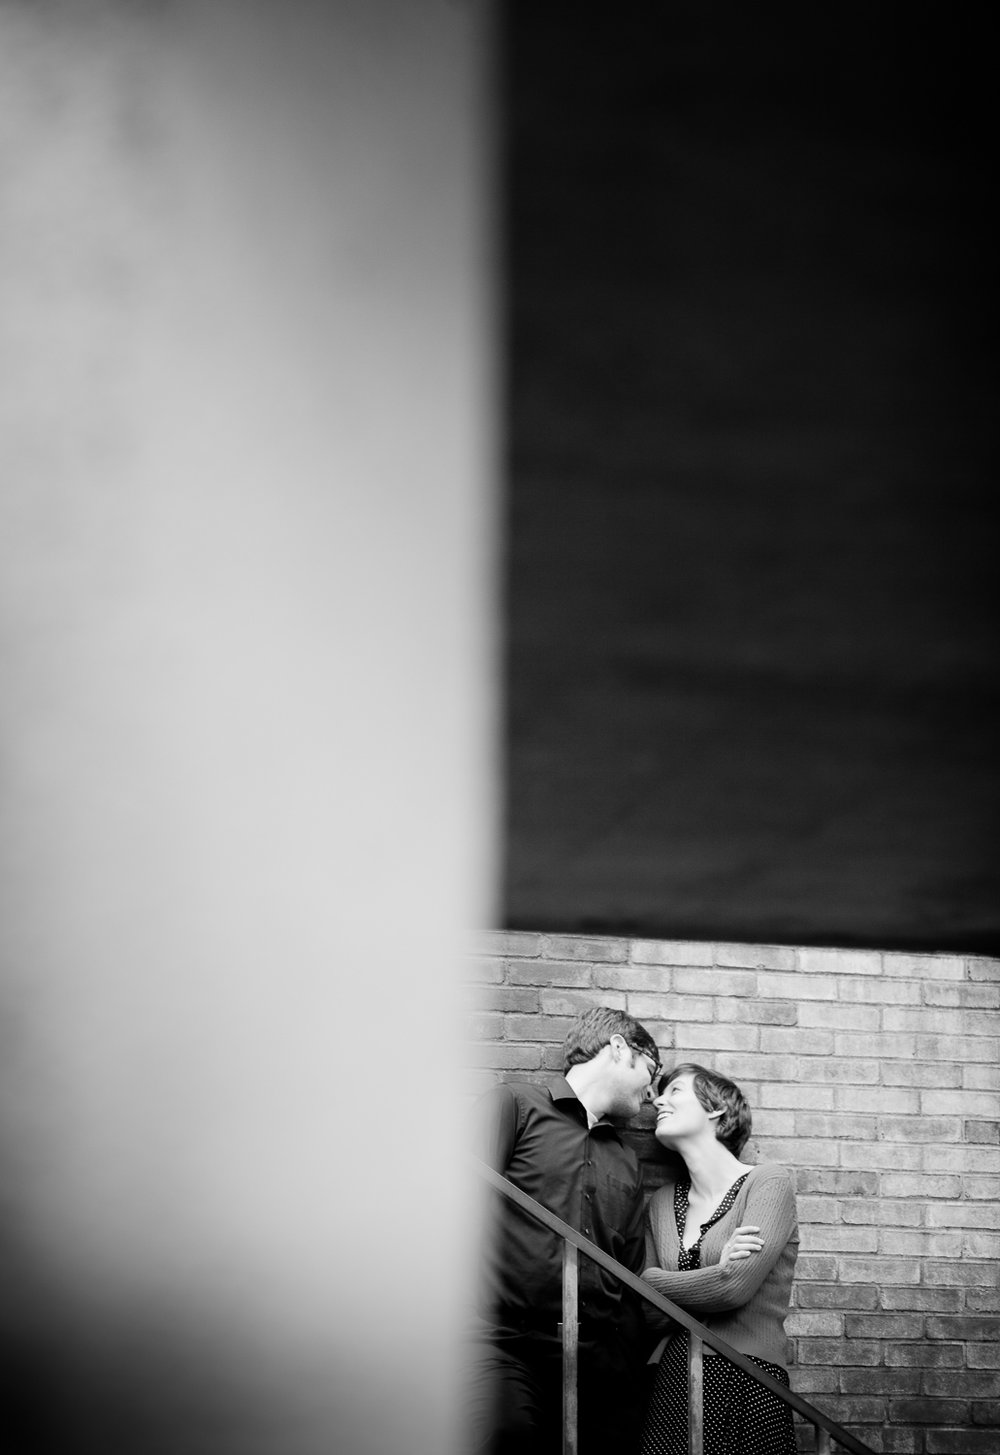 Central New Jersey Photographer Lancaster Pennsylvania Engagement Portrait Photo Session-14.jpg